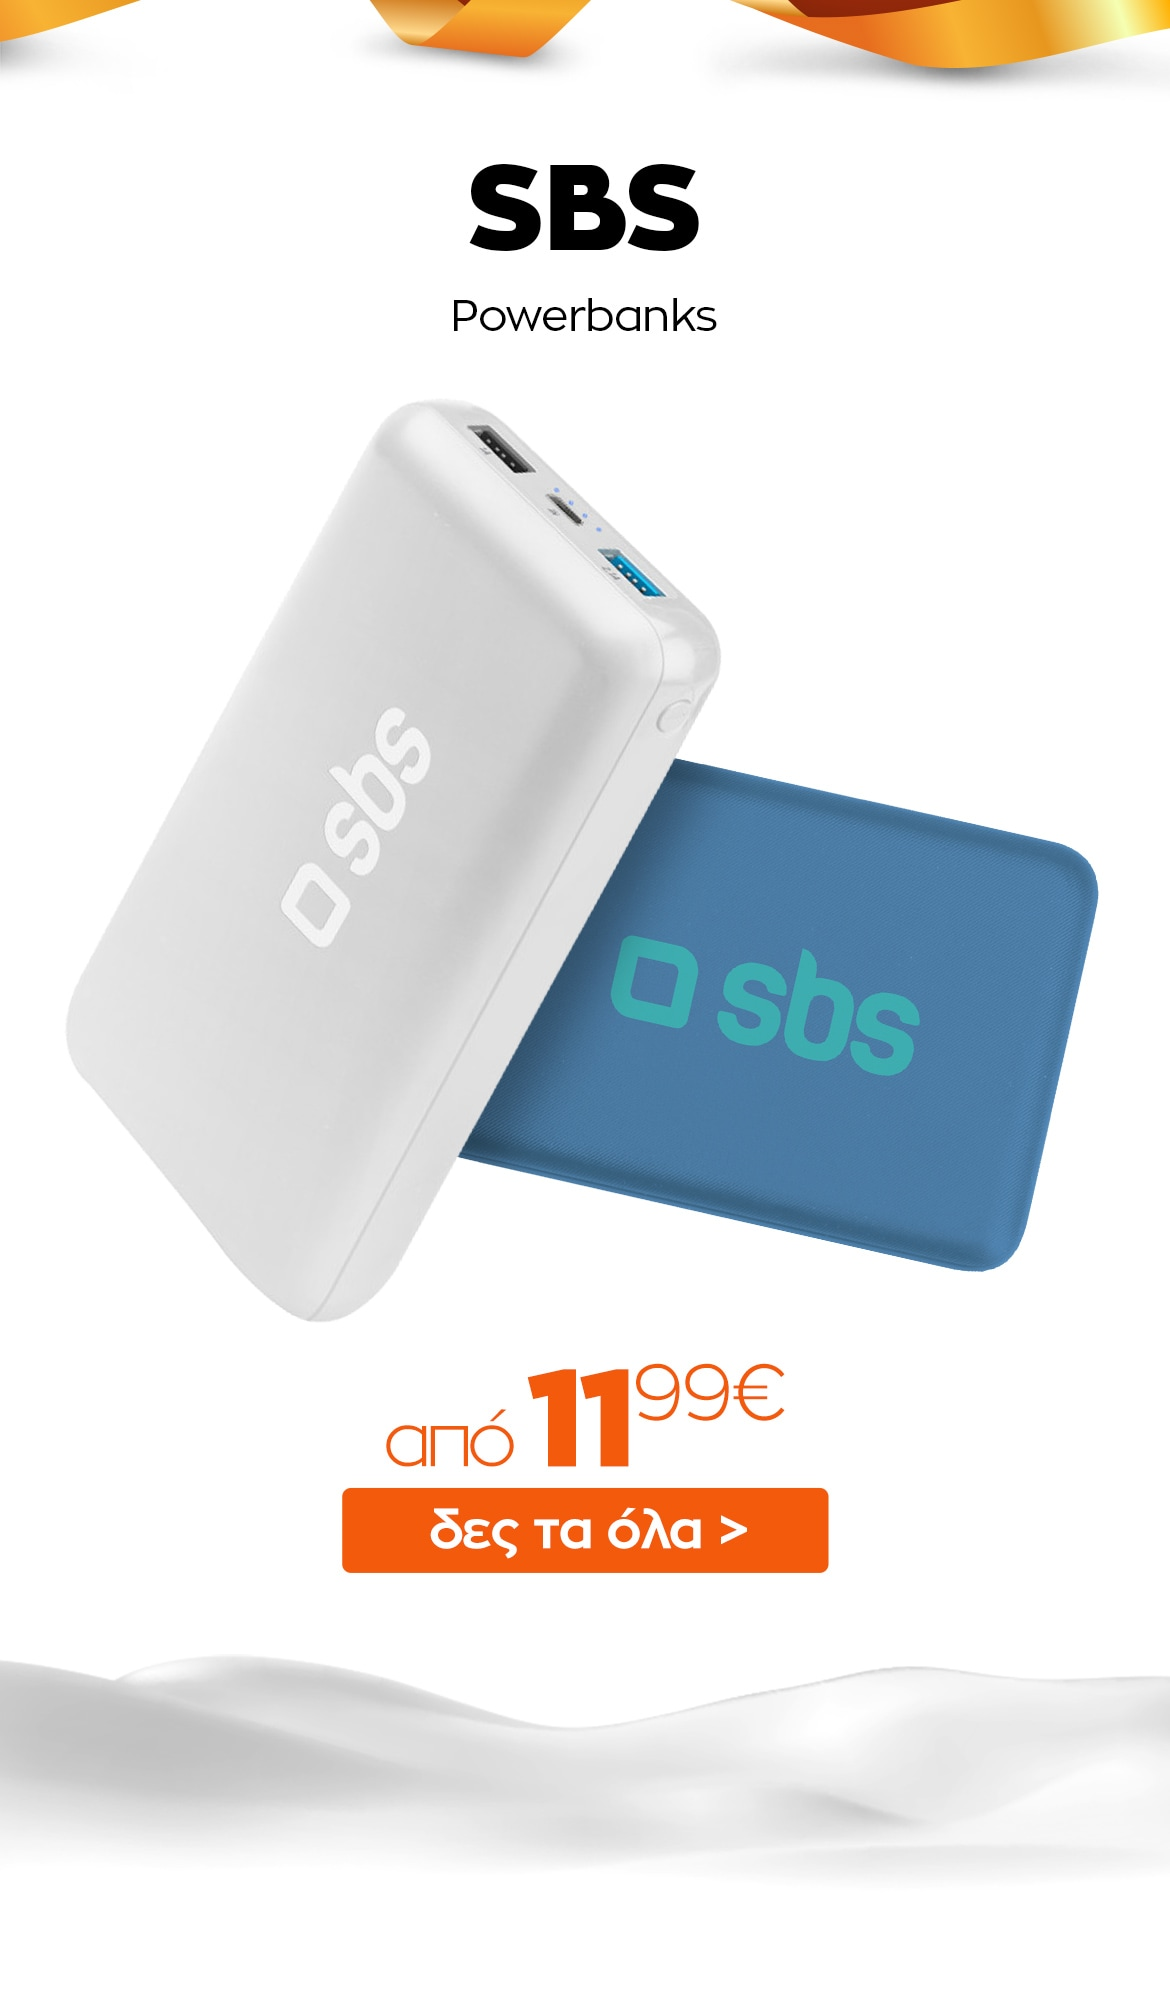 07_sbs_powerbank